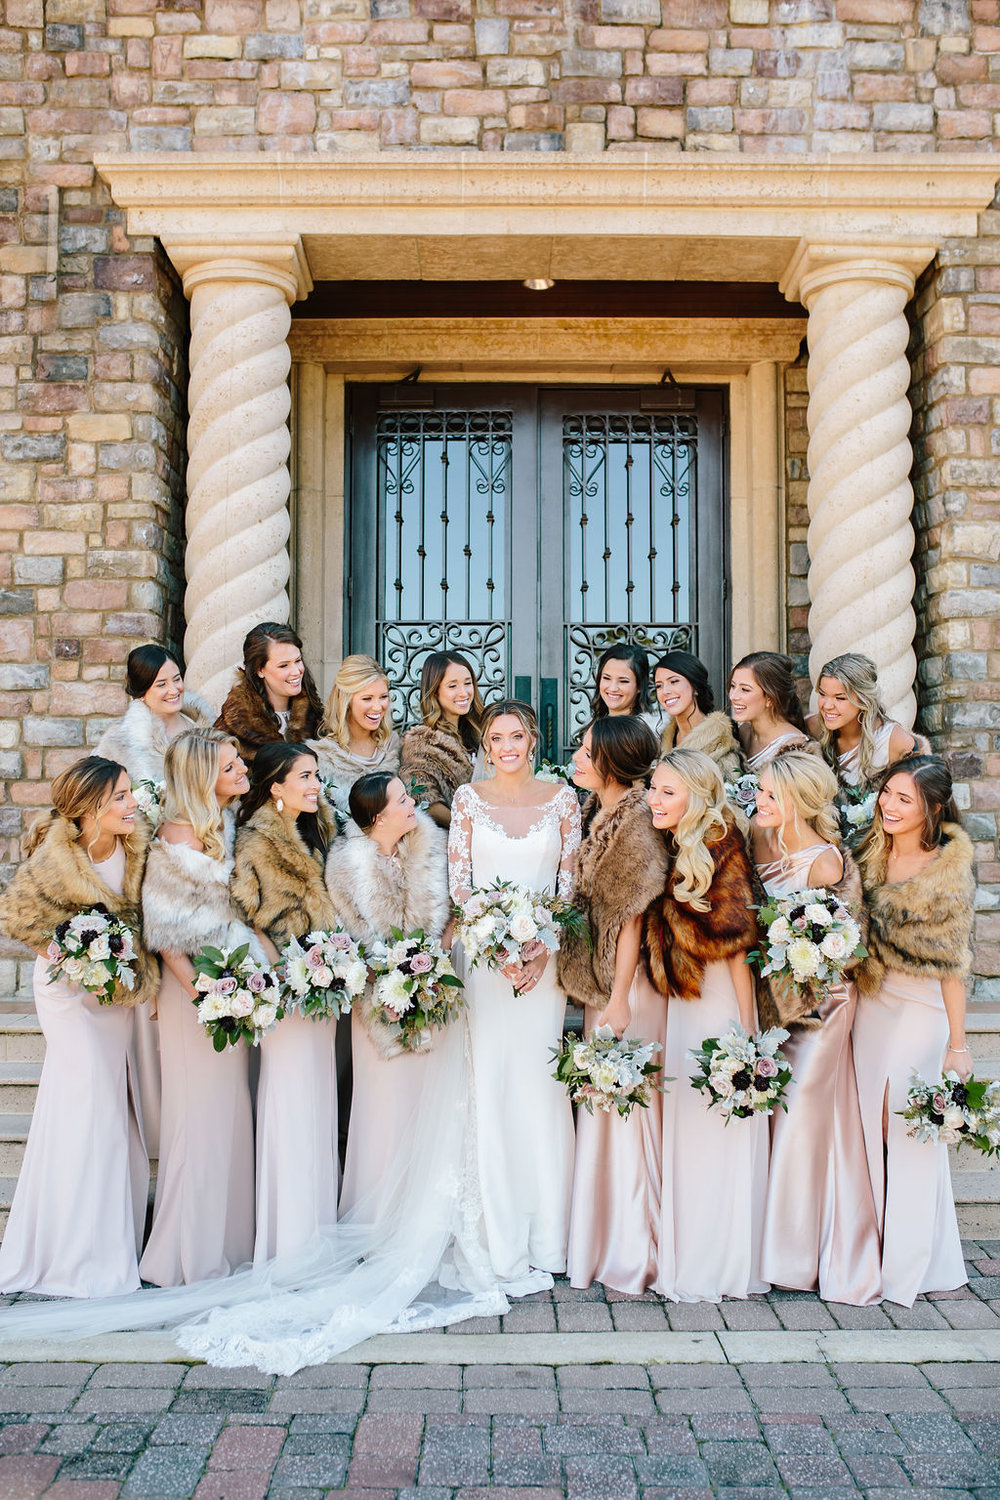 Bluegrass Chic - Bridal party ladies in fur stole